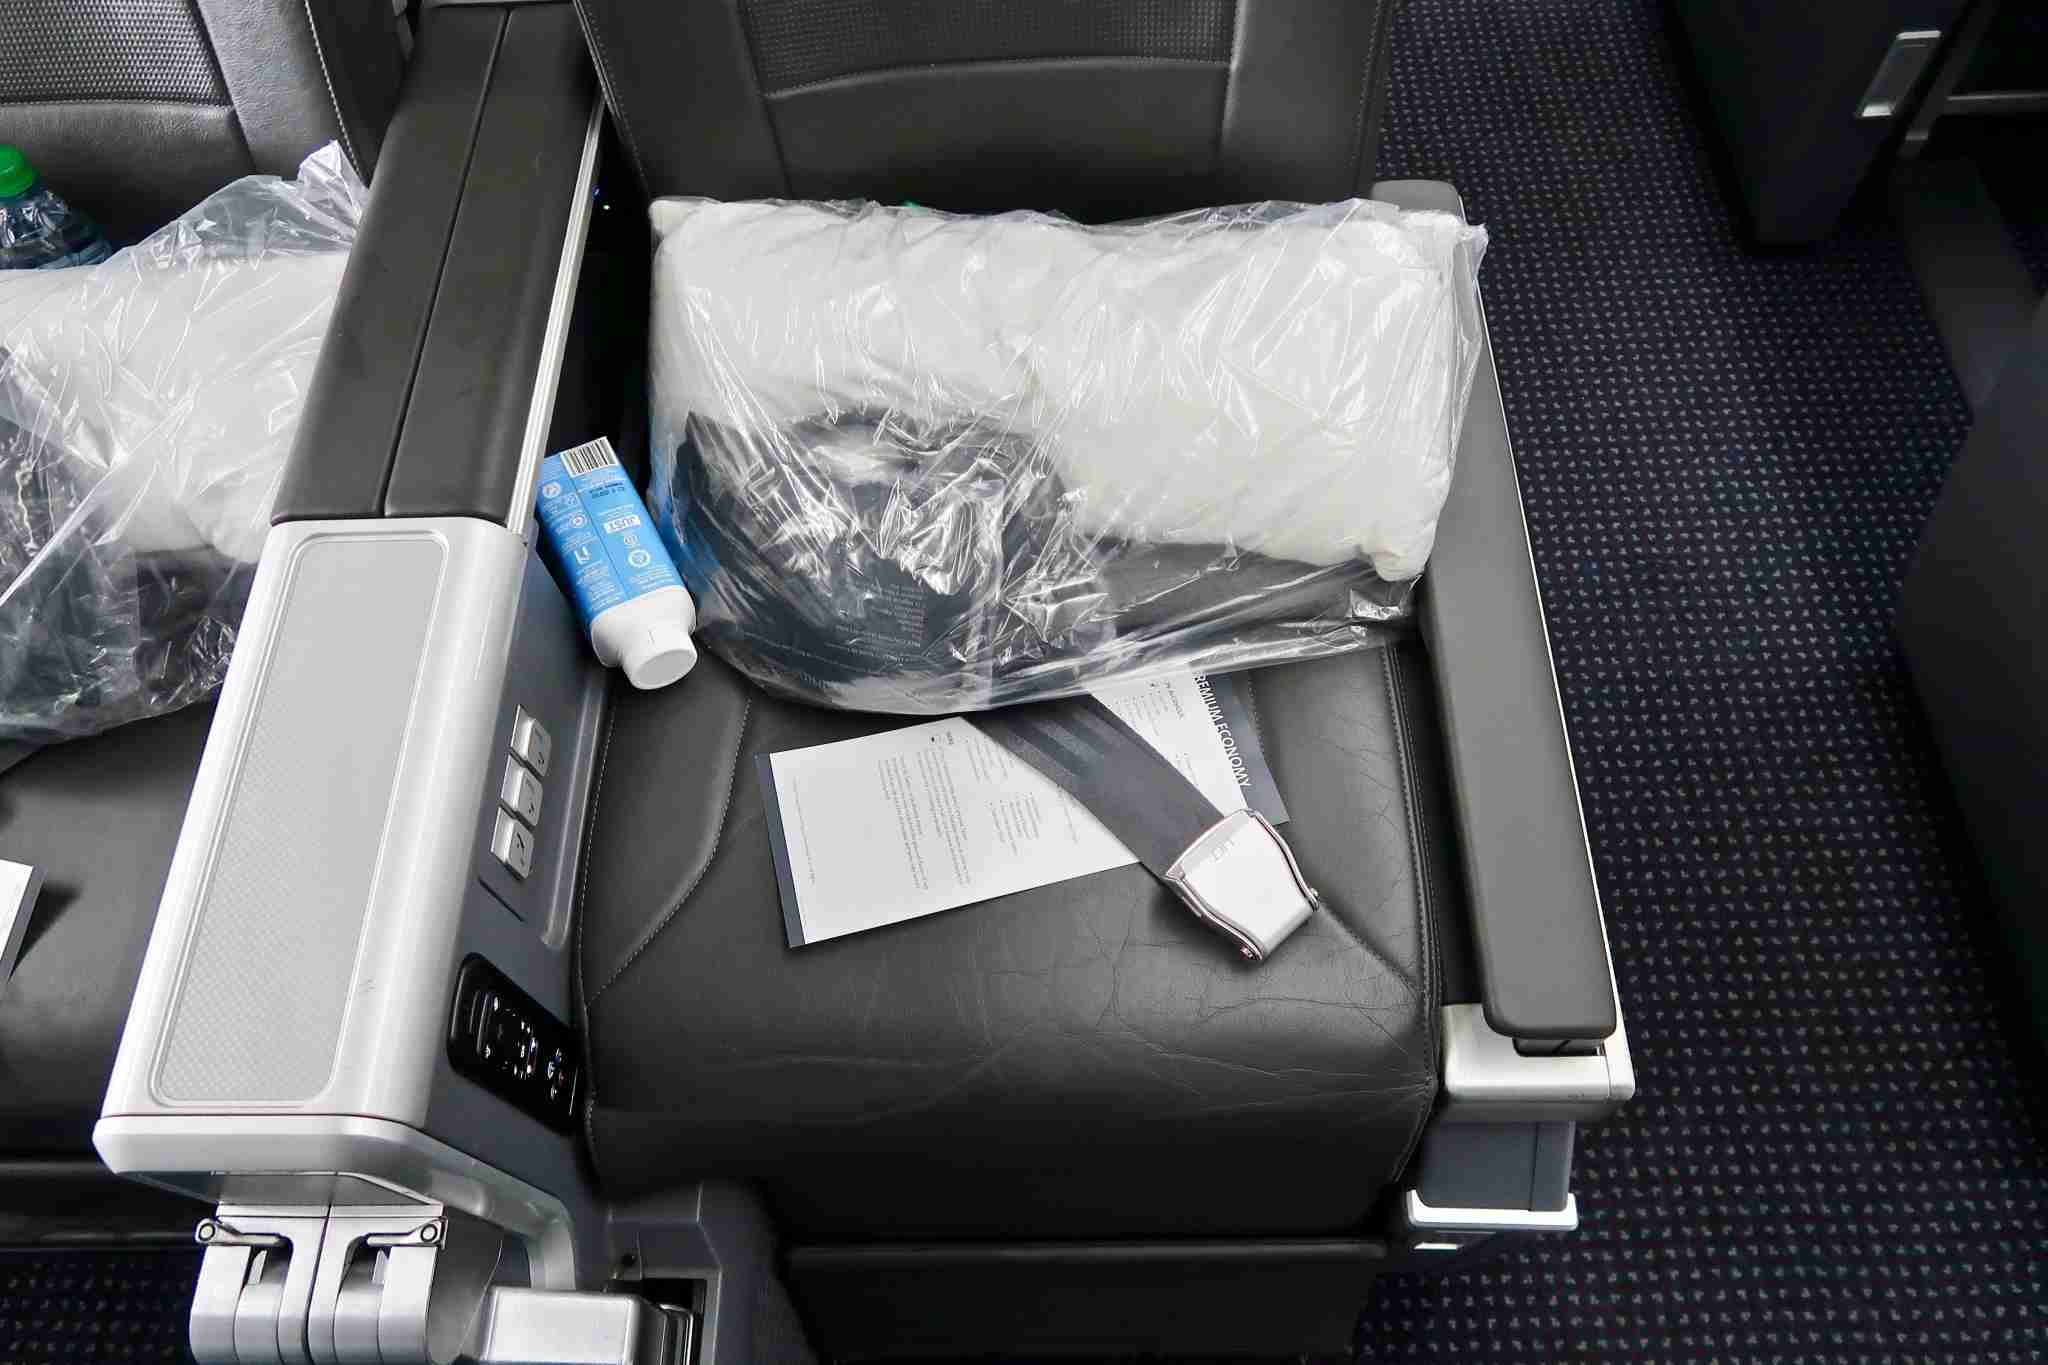 Premium economy amenities at boarding. Photo by Christian Kramer / The Points Guy.